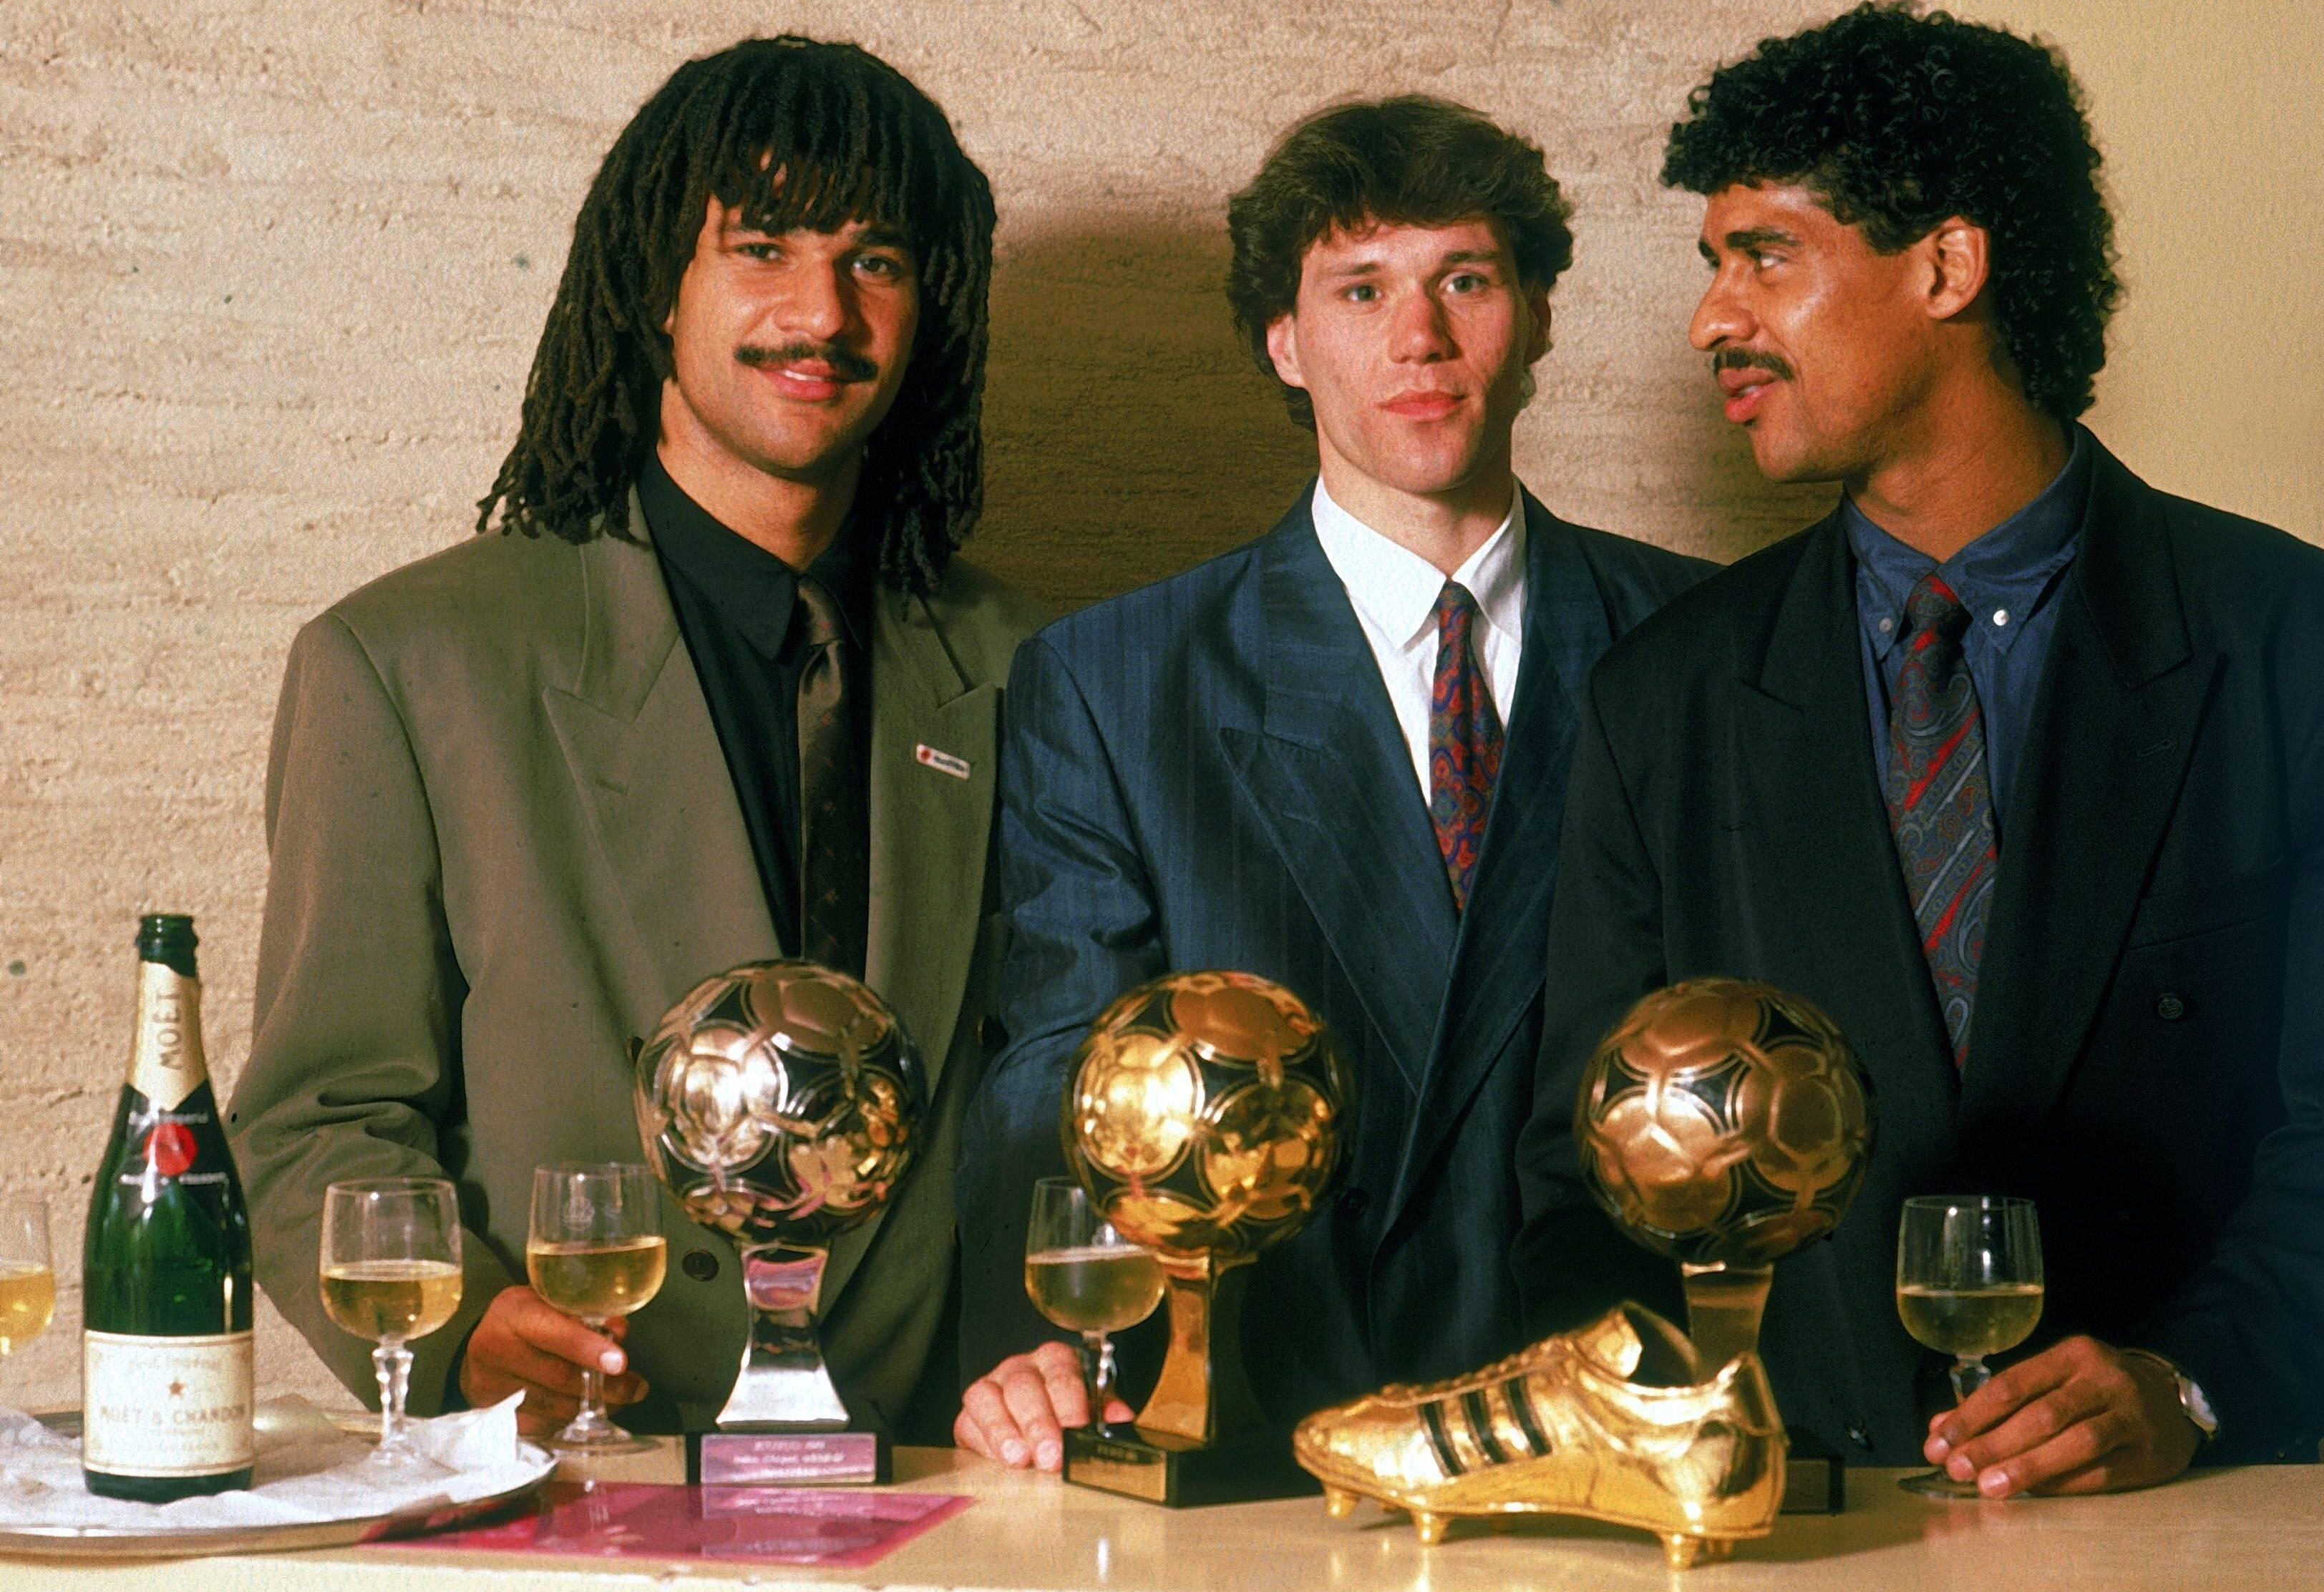 Gullit - with former AC Milan team-mates Marco van Basten and Frank Rijkaard - won the Ballon d'Or in 1987 and came second in 1988